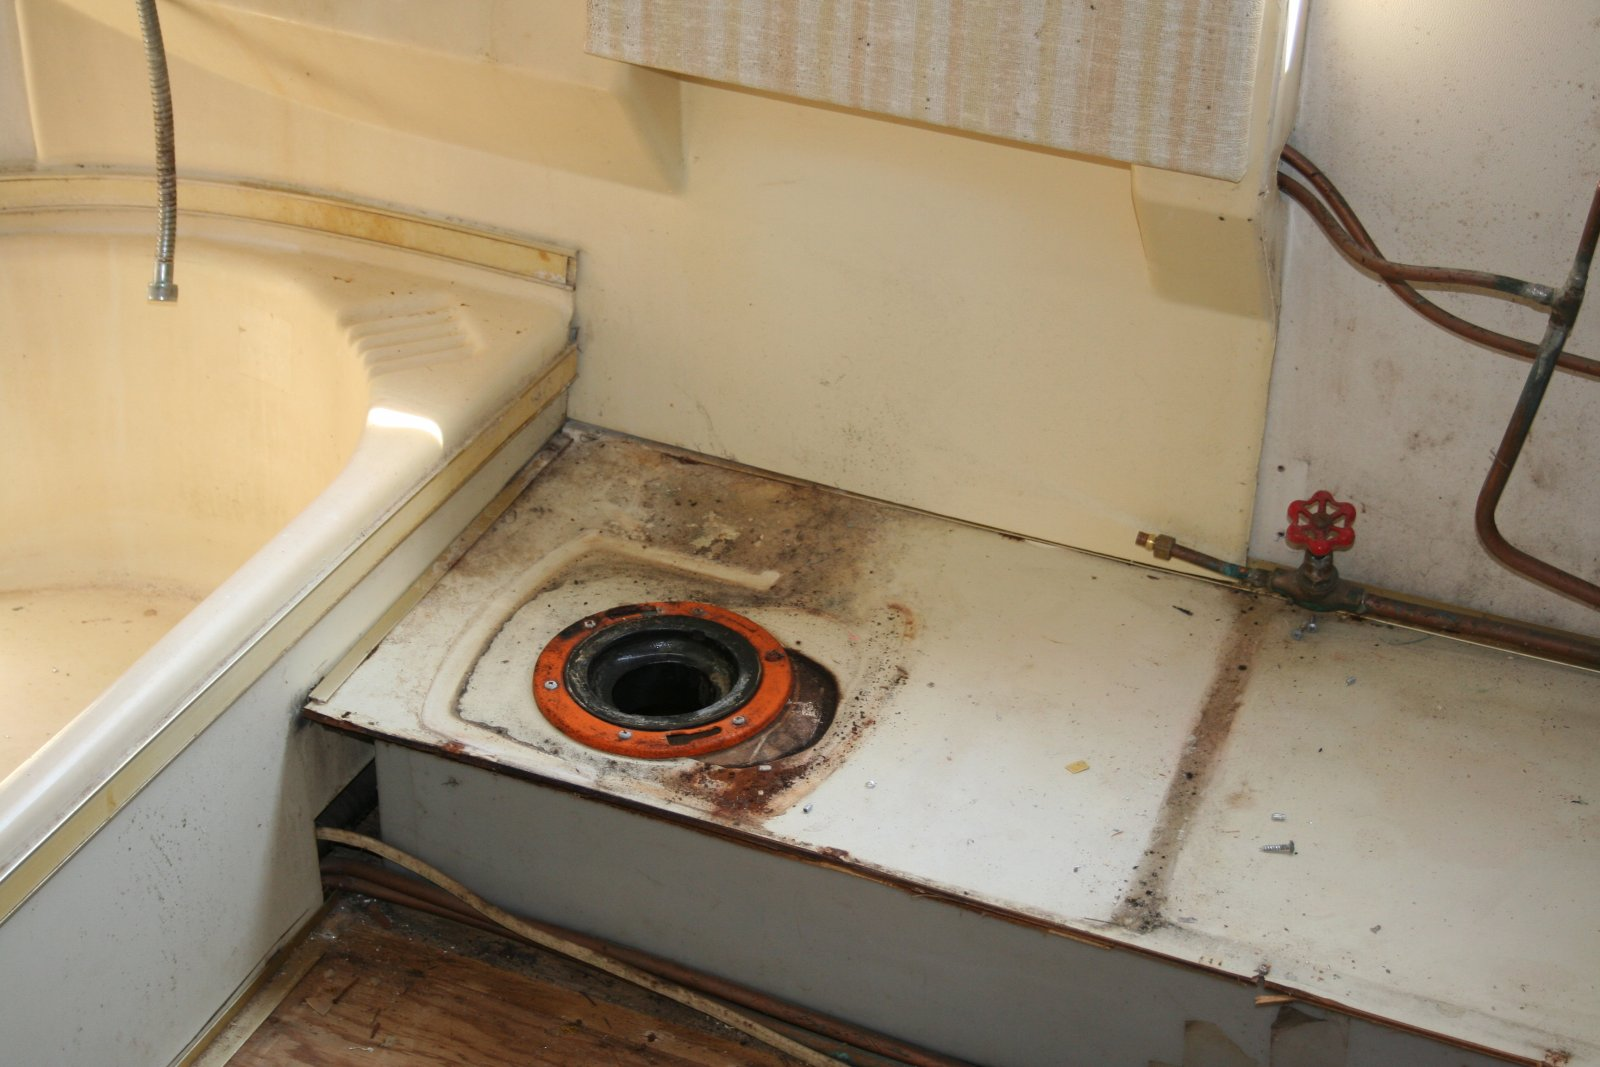 Click image for larger version  Name:argosy toilet 2.jpg Views:352 Size:200.4 KB ID:160643